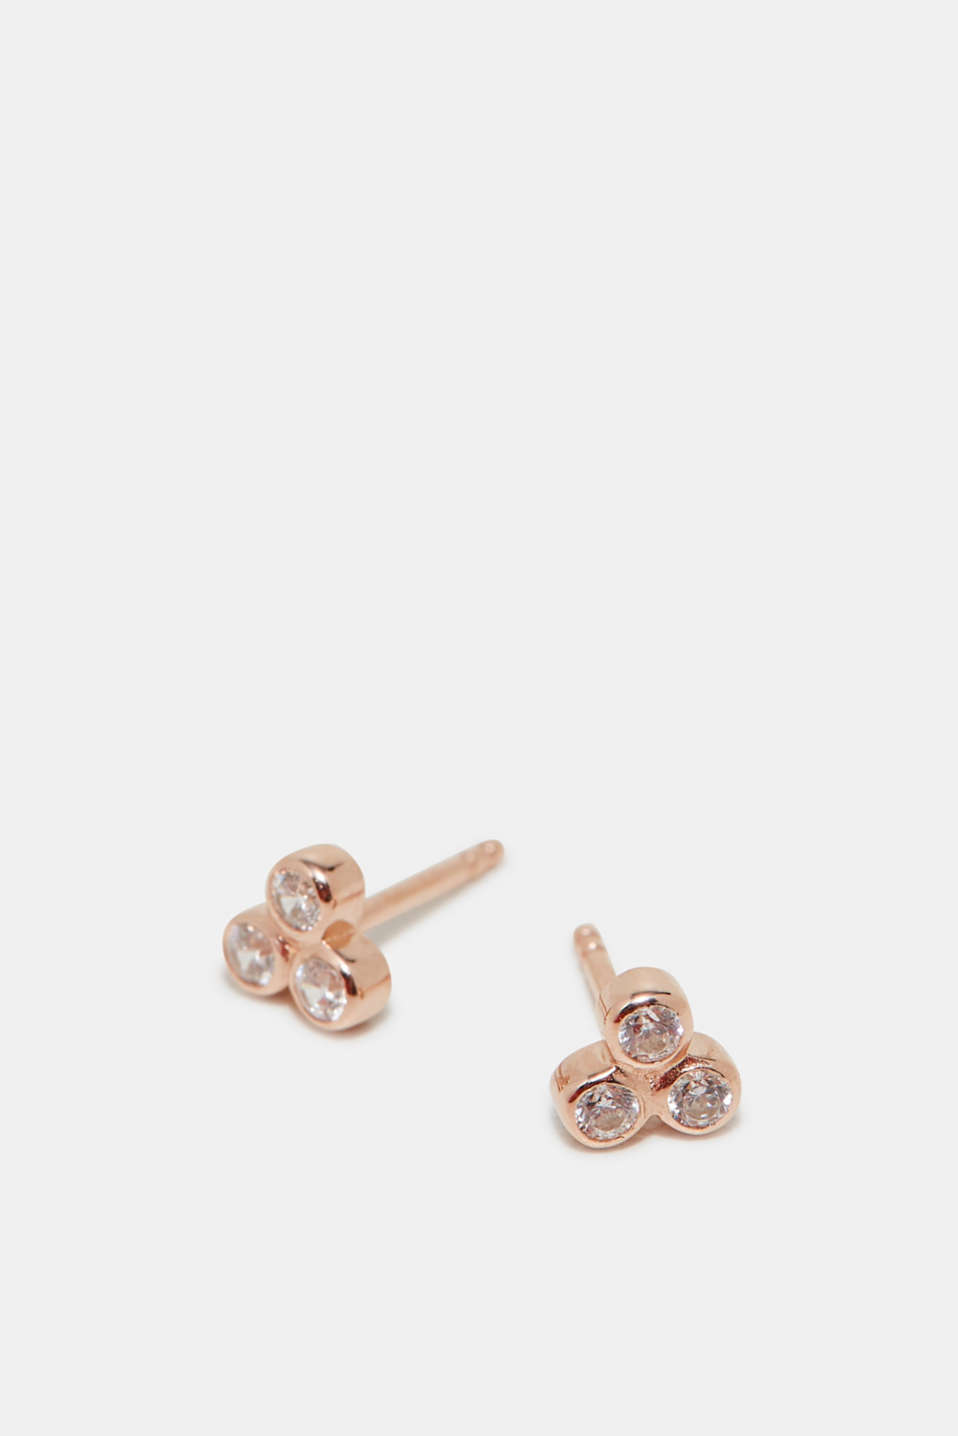 Stud earrings with zirconia, in silver